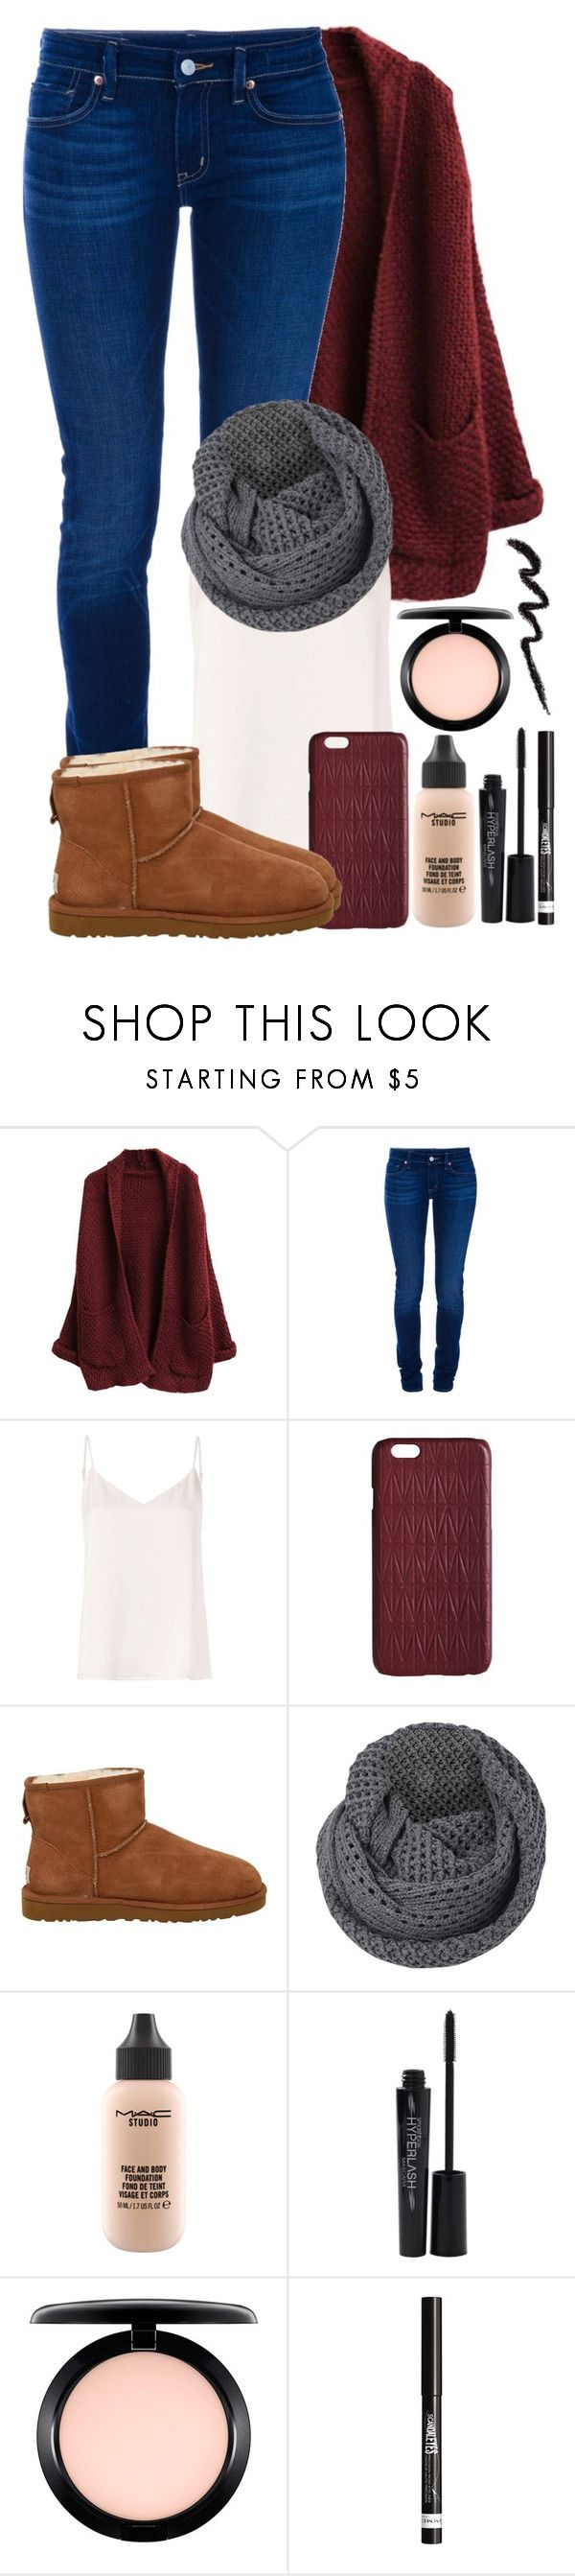 """#27"" by oneandonlyfashion ❤ liked on Polyvore featuring Ralph Lauren, L'Agence, Dagmar, UGG Australia, French Connection, MAC Cosmetics, Smashbox and Rimmel"